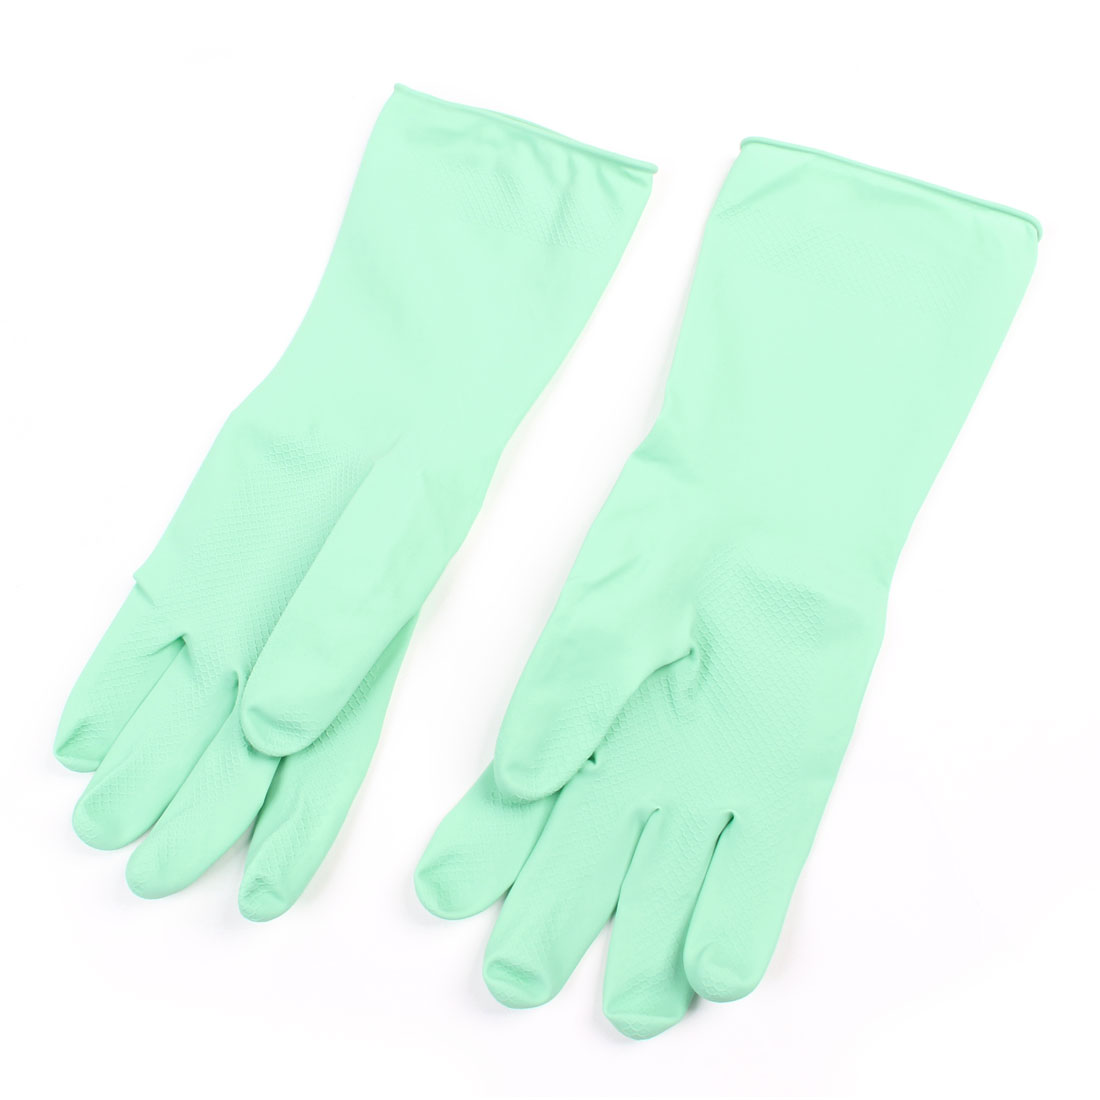 Pair Housework Latex Long Cuff Cleaning Washing Gloves Light Green